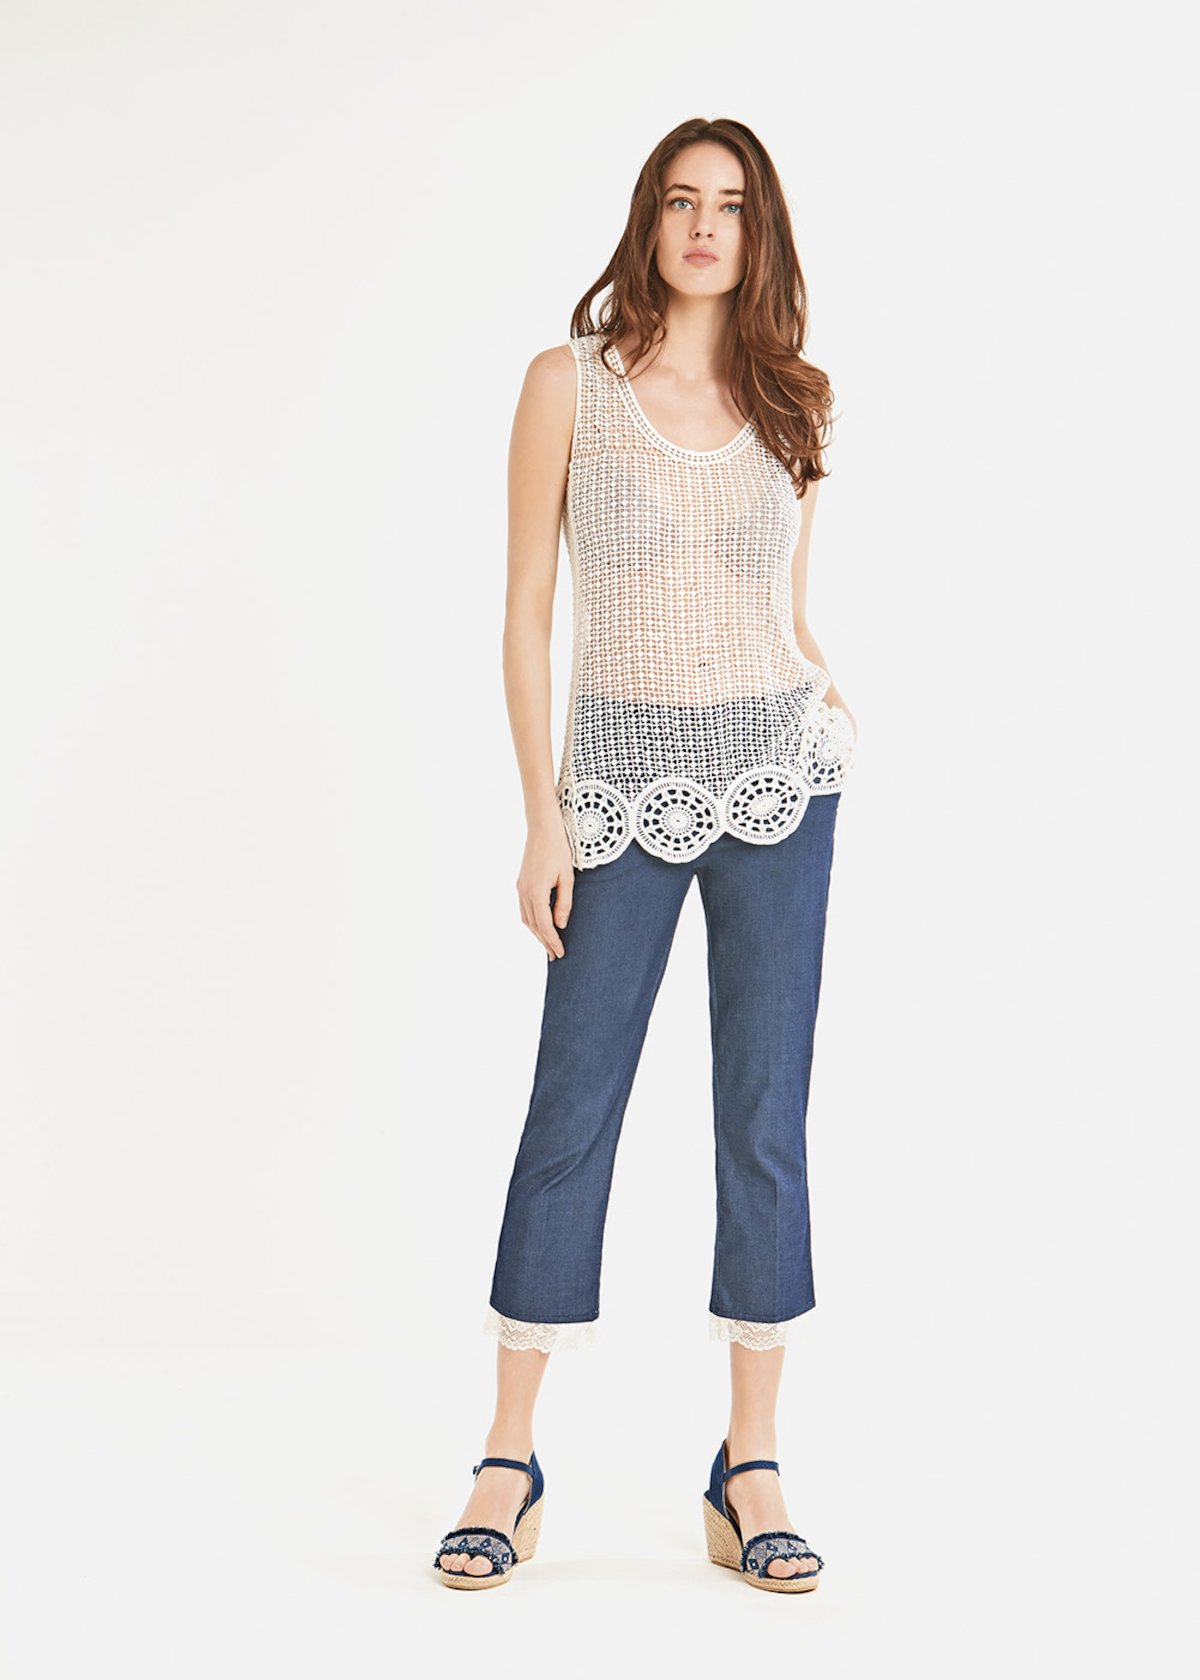 Twin top with crochet detail on the bottom